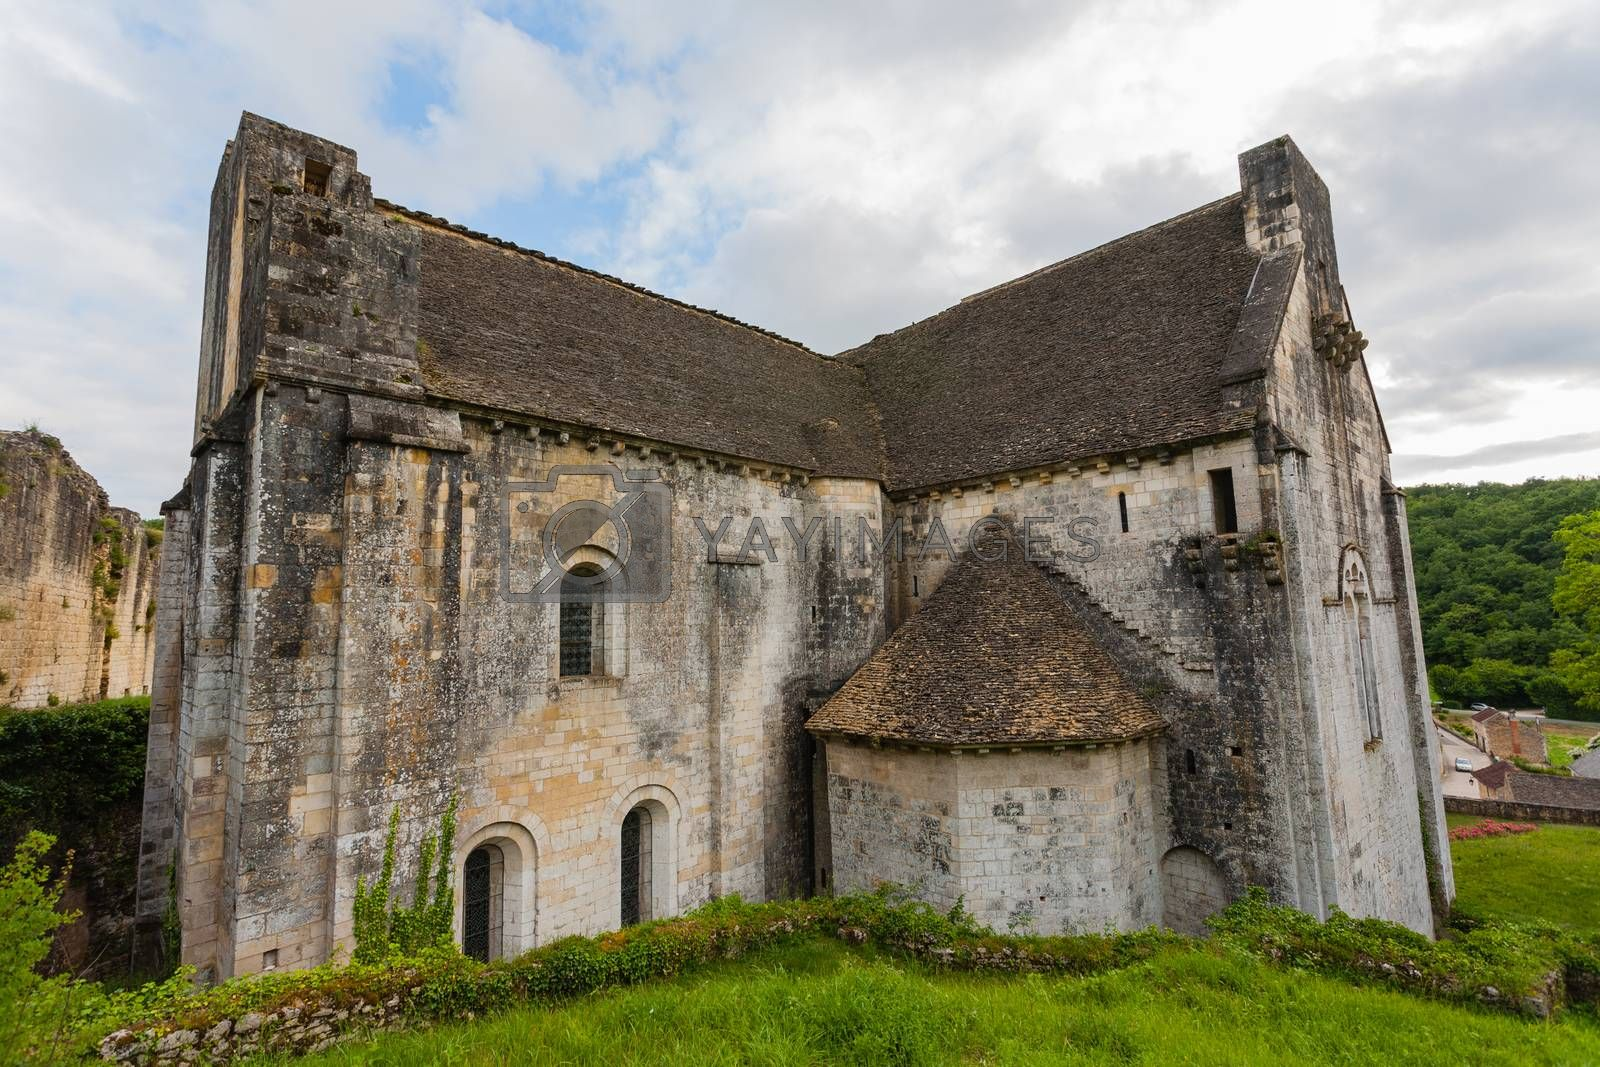 Saint Amand de Coly church in Dordigne ,France by imagsan